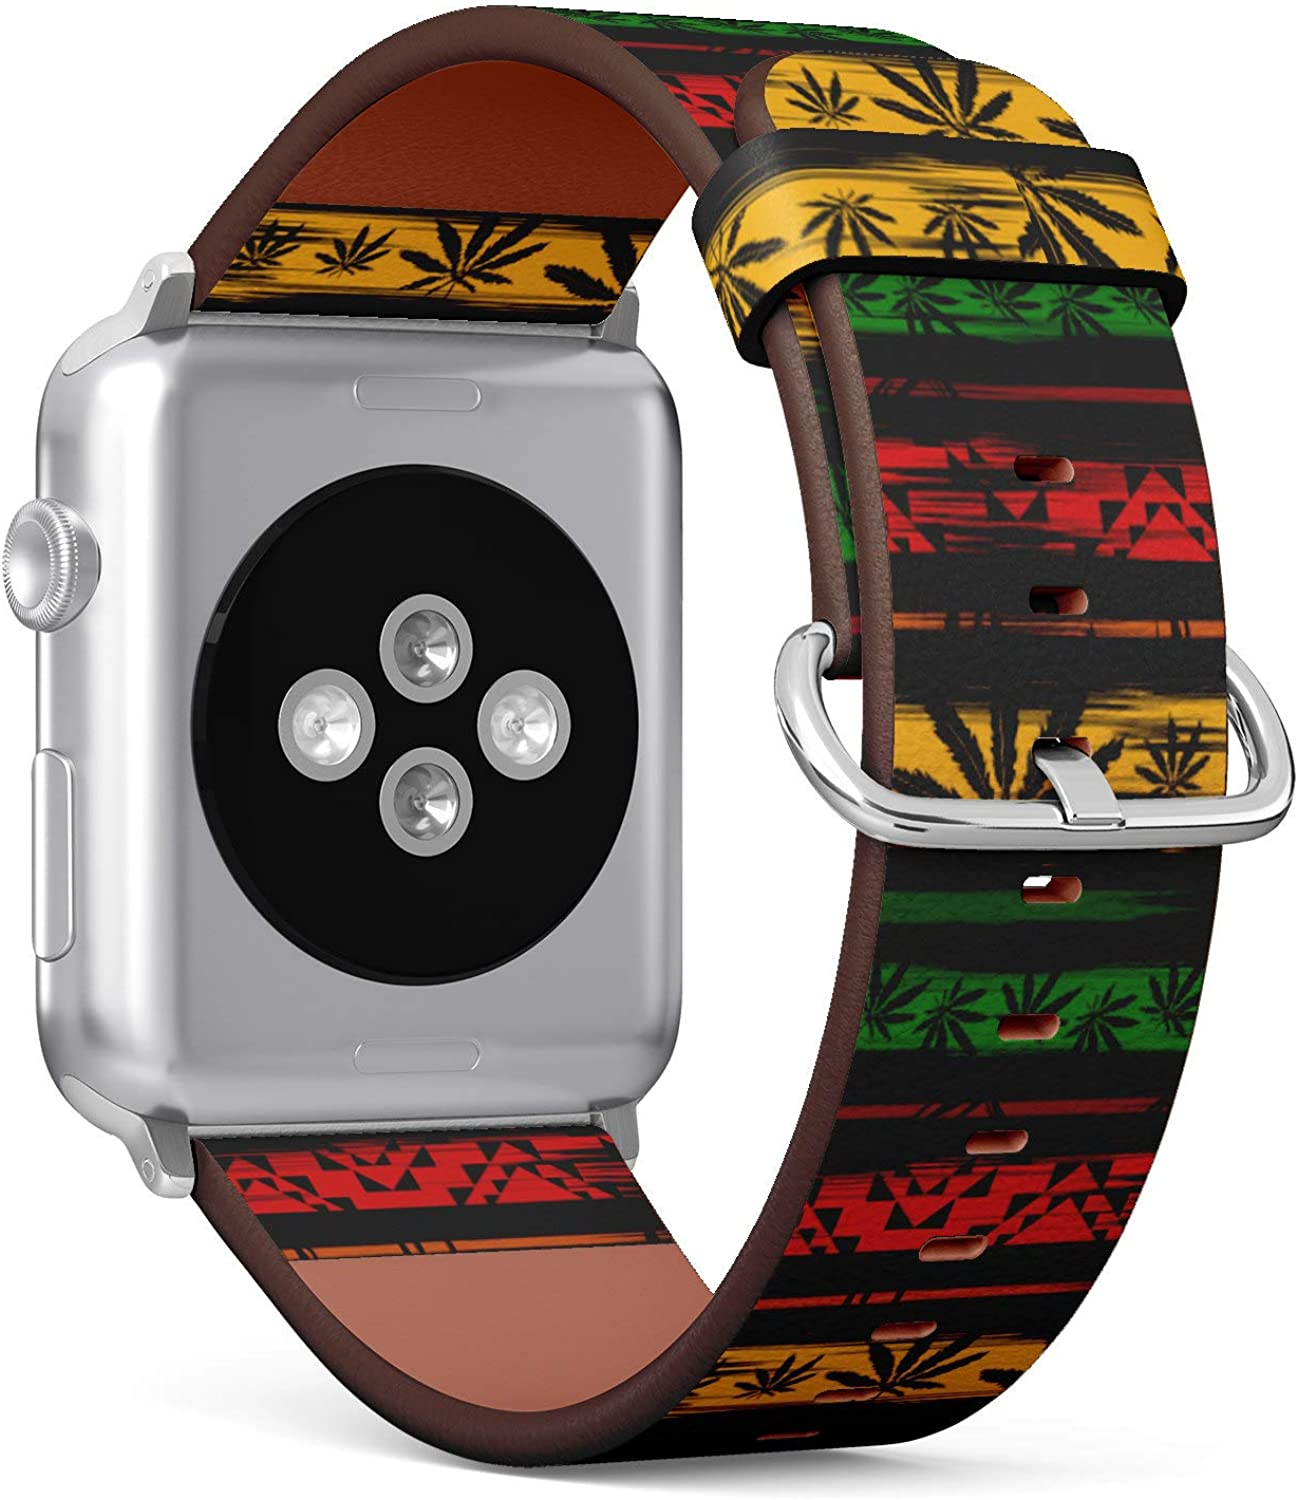 (Marijuana Cannabis Leaf on Rastafarian Pattern) Patterned Leather Wristband Strap for Apple Watch Series 4/3/2/1 gen,Replacement for iWatch 38mm / 40mm Bands